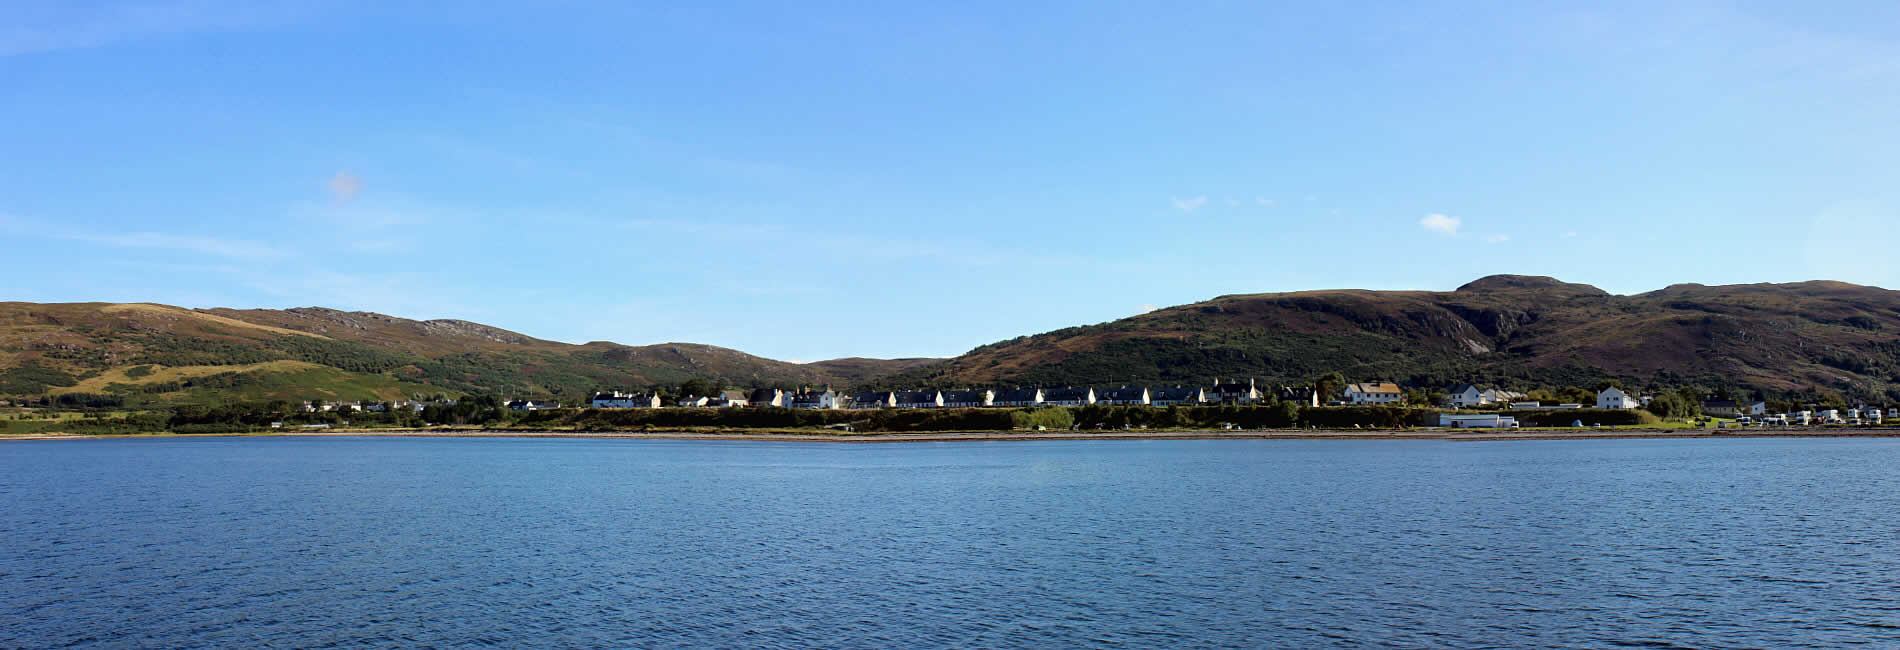 Ullapool from the sea